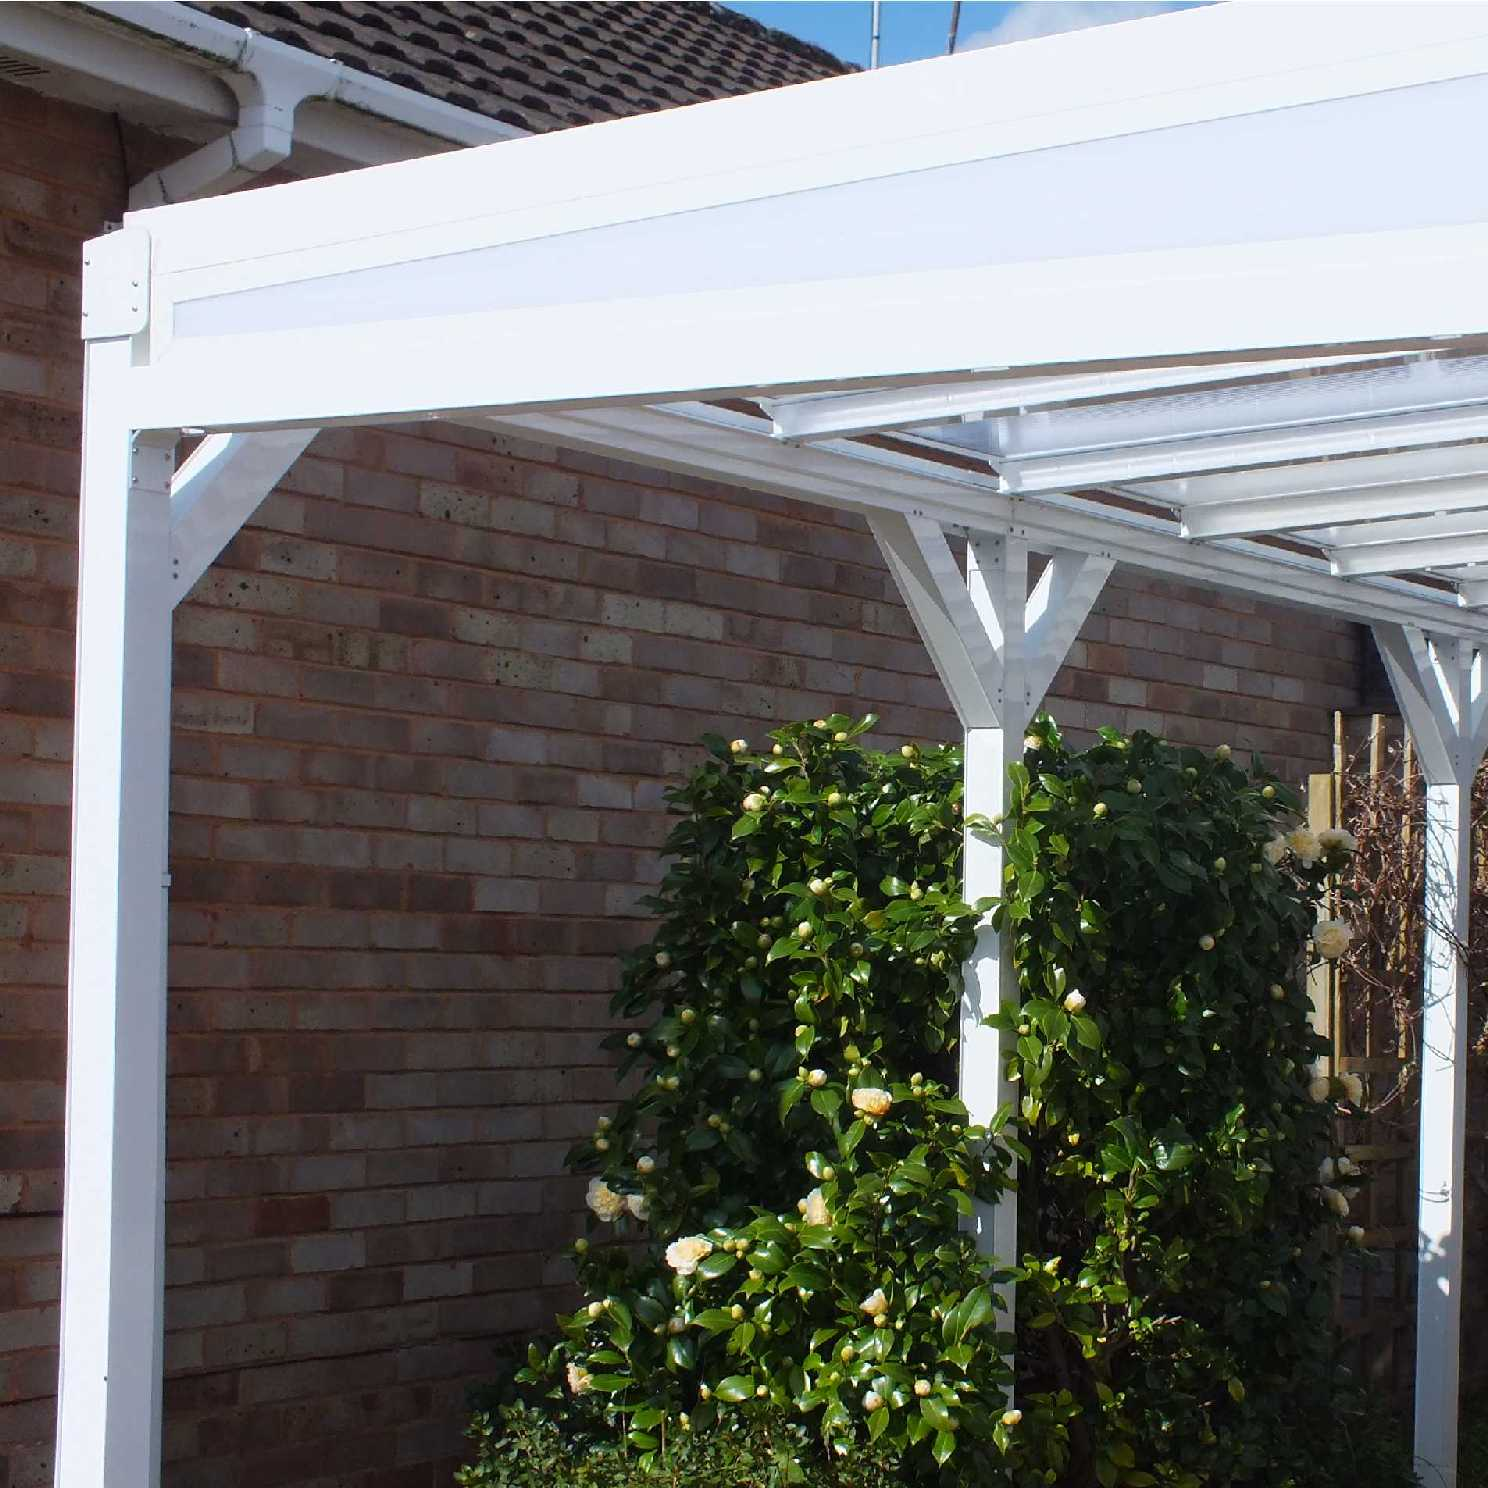 Omega Smart WhiteLean-To Canopy with 16mm Polycarbonate Glazing - 8.4m (W) x 2.0m (P), (4) Supporting Posts from Omega Build